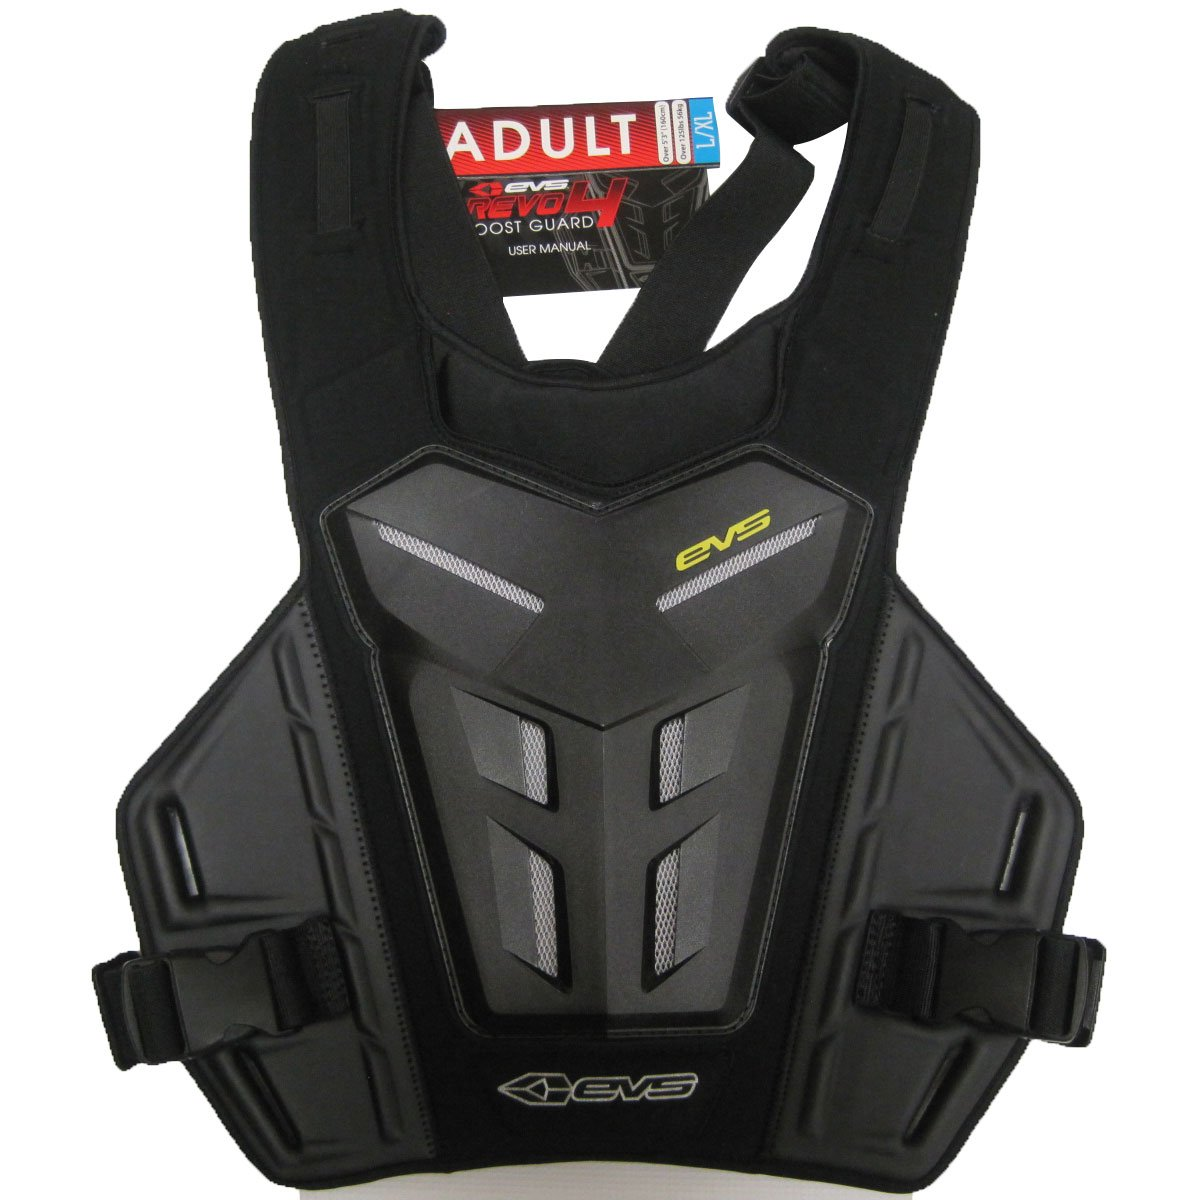 EVS Revolution 4 Adult Roost Guard Motocross/Off-Road/Dirt Bike Motorcycle Body Armor - Black/Grey / One Size